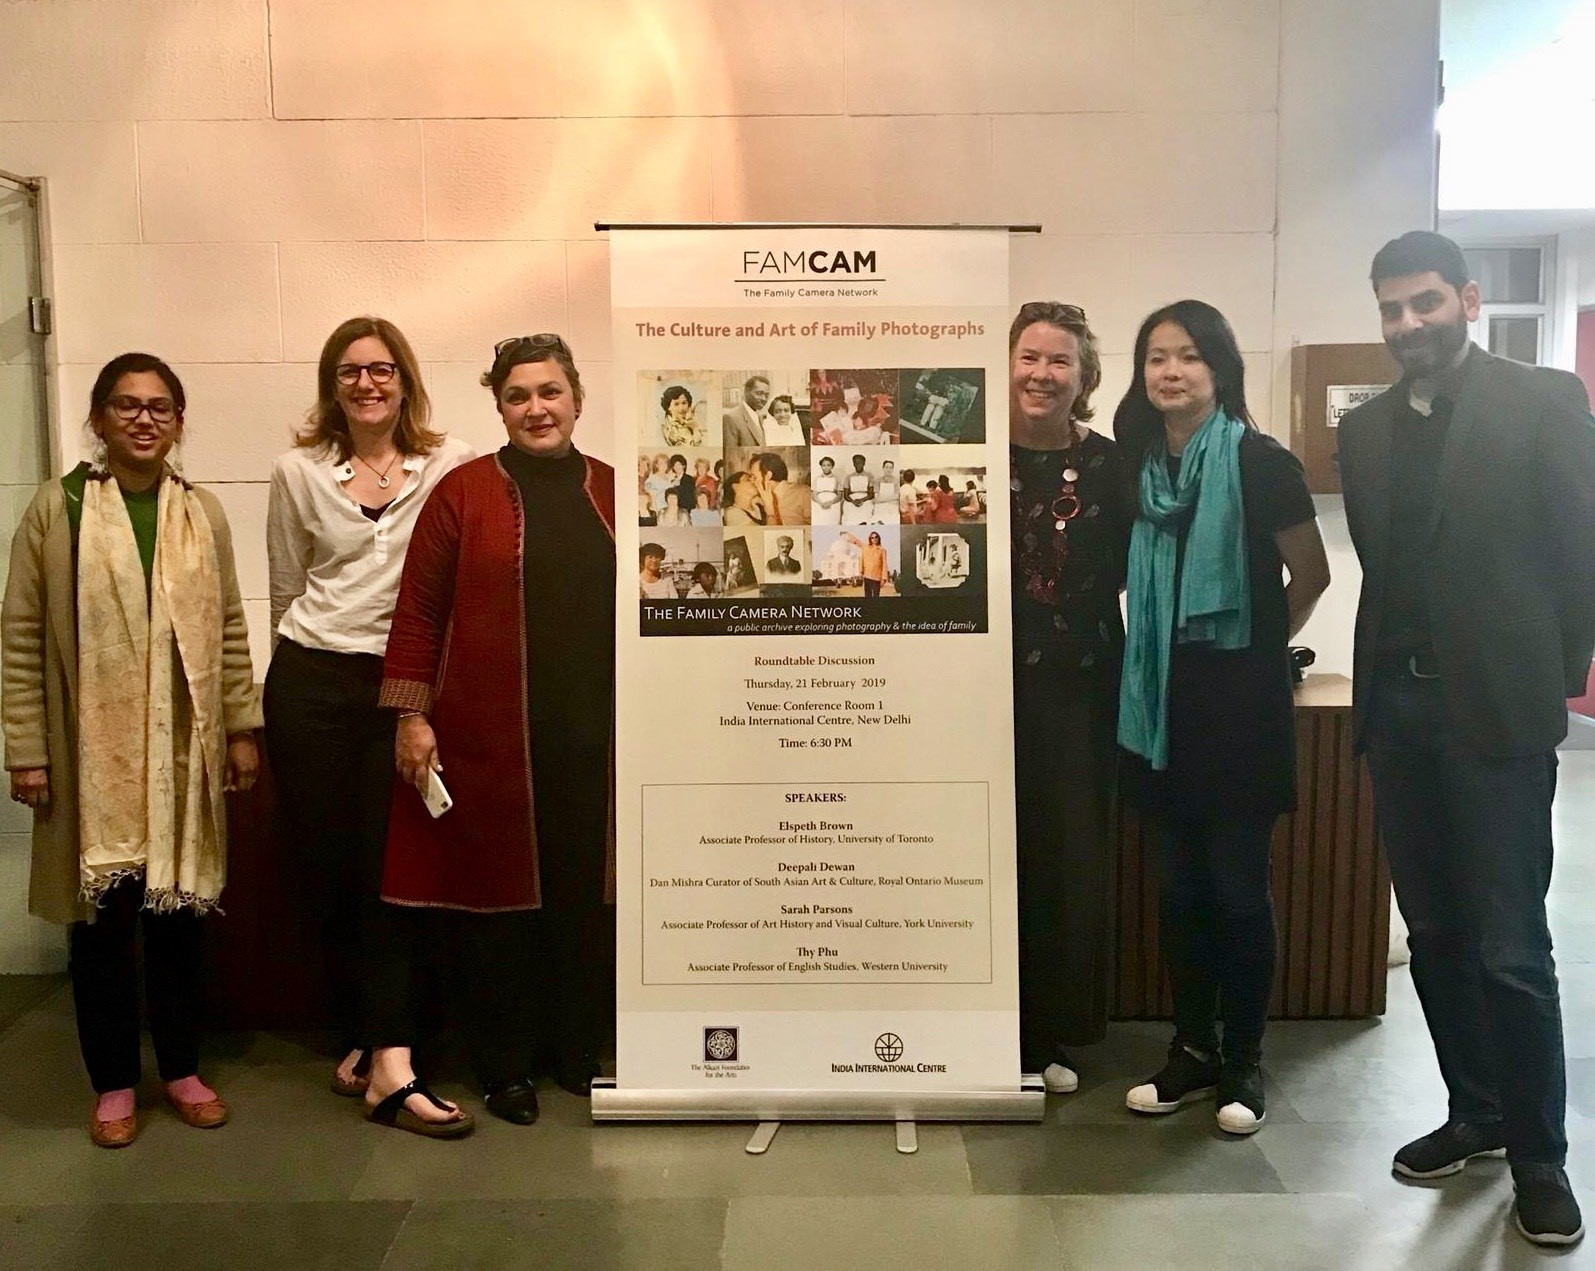 Group photograph with event signage at IIC (Photo: Michael Tang, 2019).